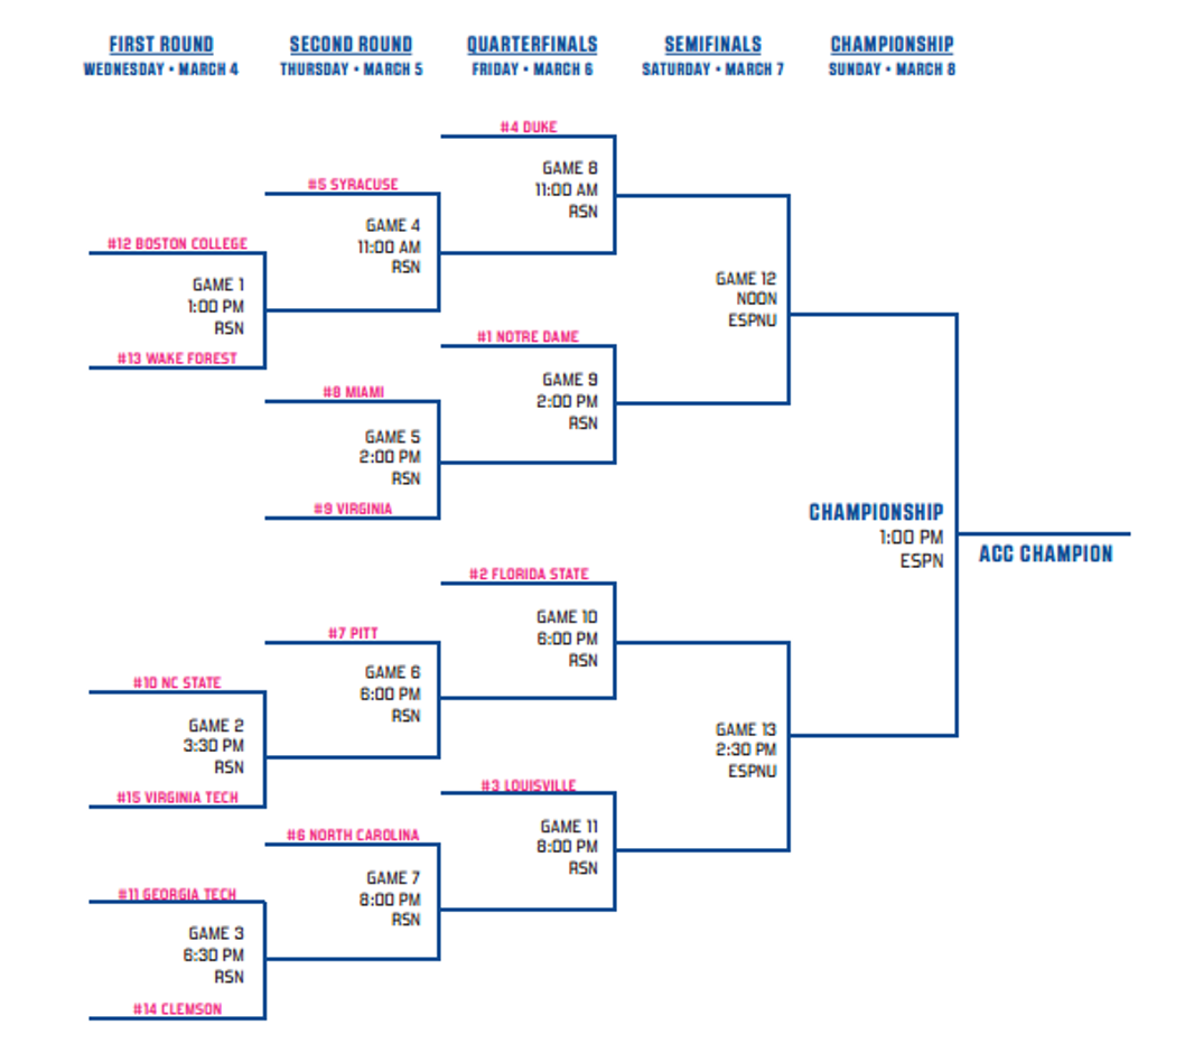 ... bracket to follow along with all the action that is unfolding, you can